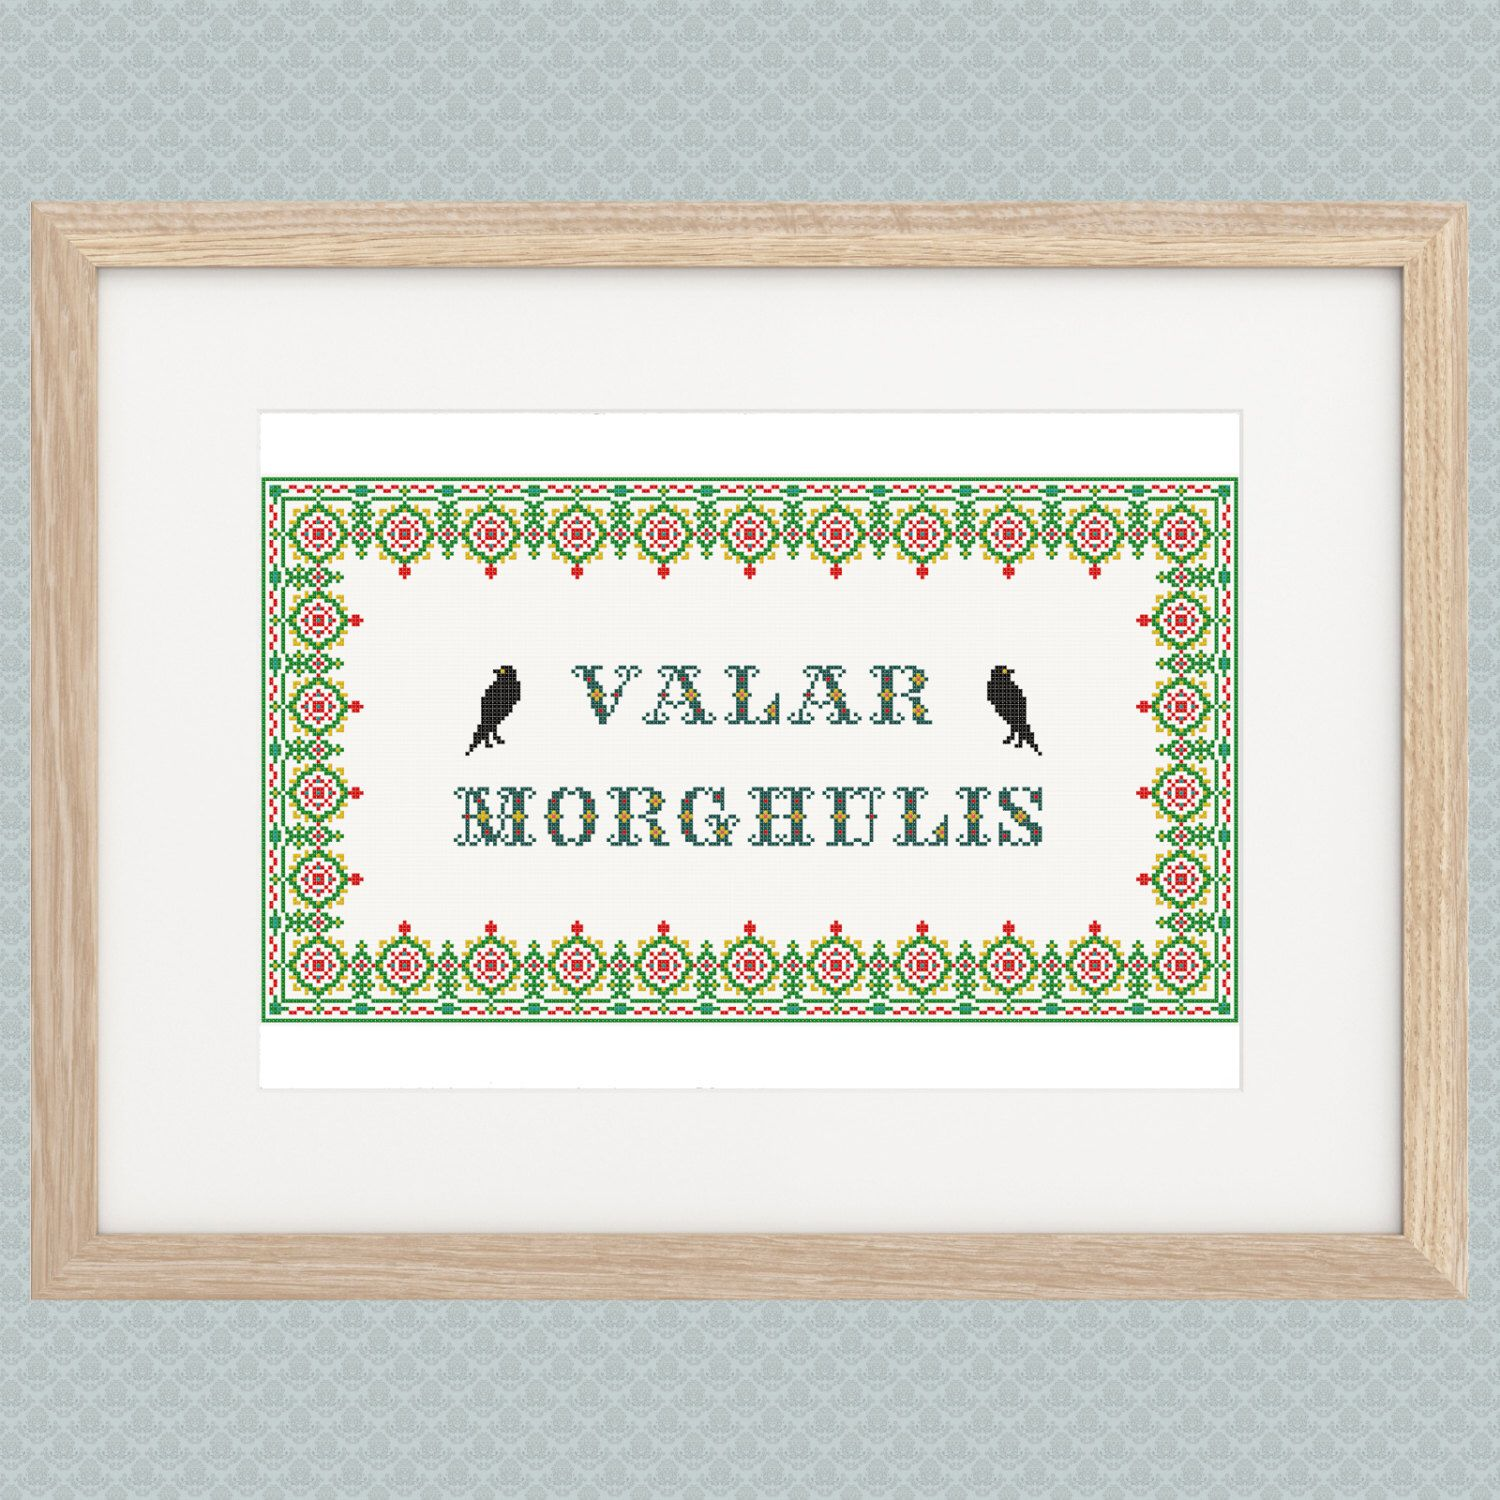 Valar Morghulis Game of Thrones Cross Stitch Pattern by DidisLaboratory on Etsy https://www.etsy.com/listing/208091914/valar-morghulis-game-of-thrones-cross